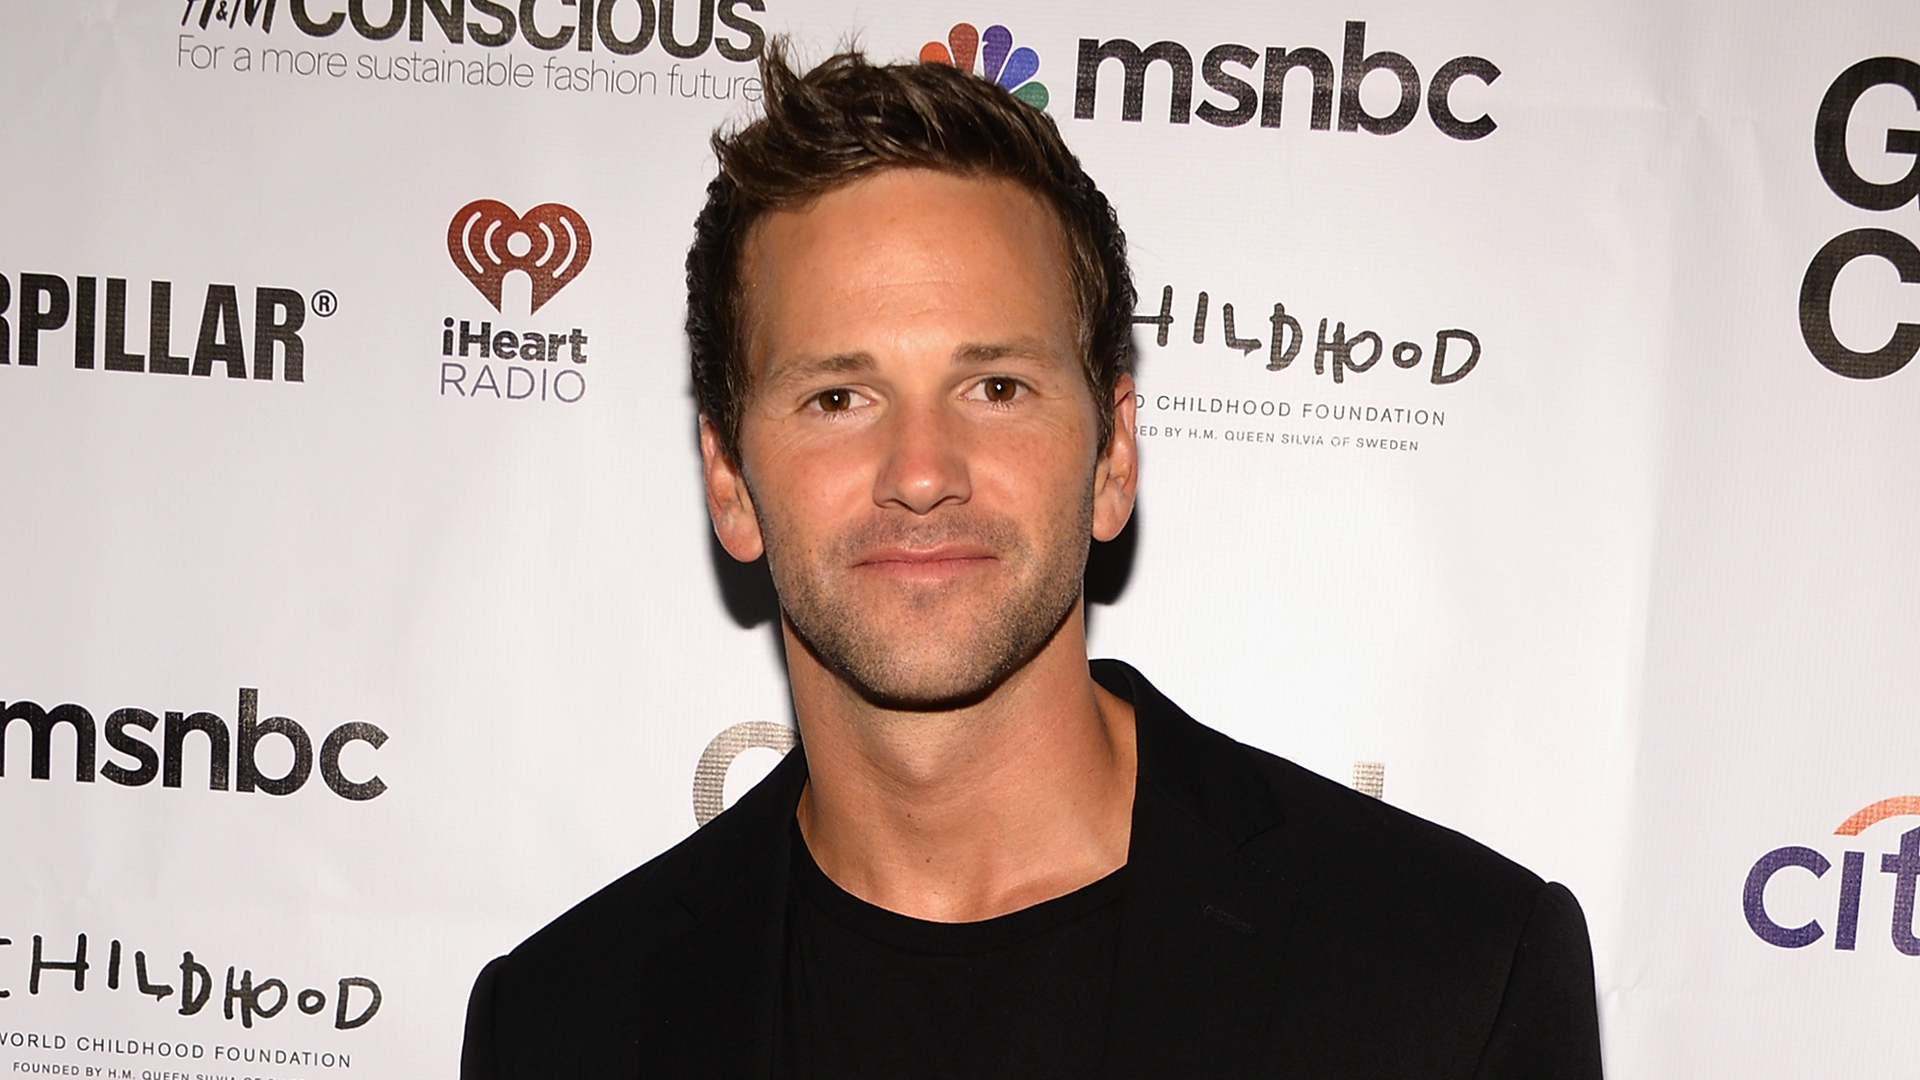 Congressman Aaron Schock attends the 2014 Global Citizen Festival at Central Park in New York City on Sept. 27, 2014. (Credit: Ben Gabbe / Getty Images)